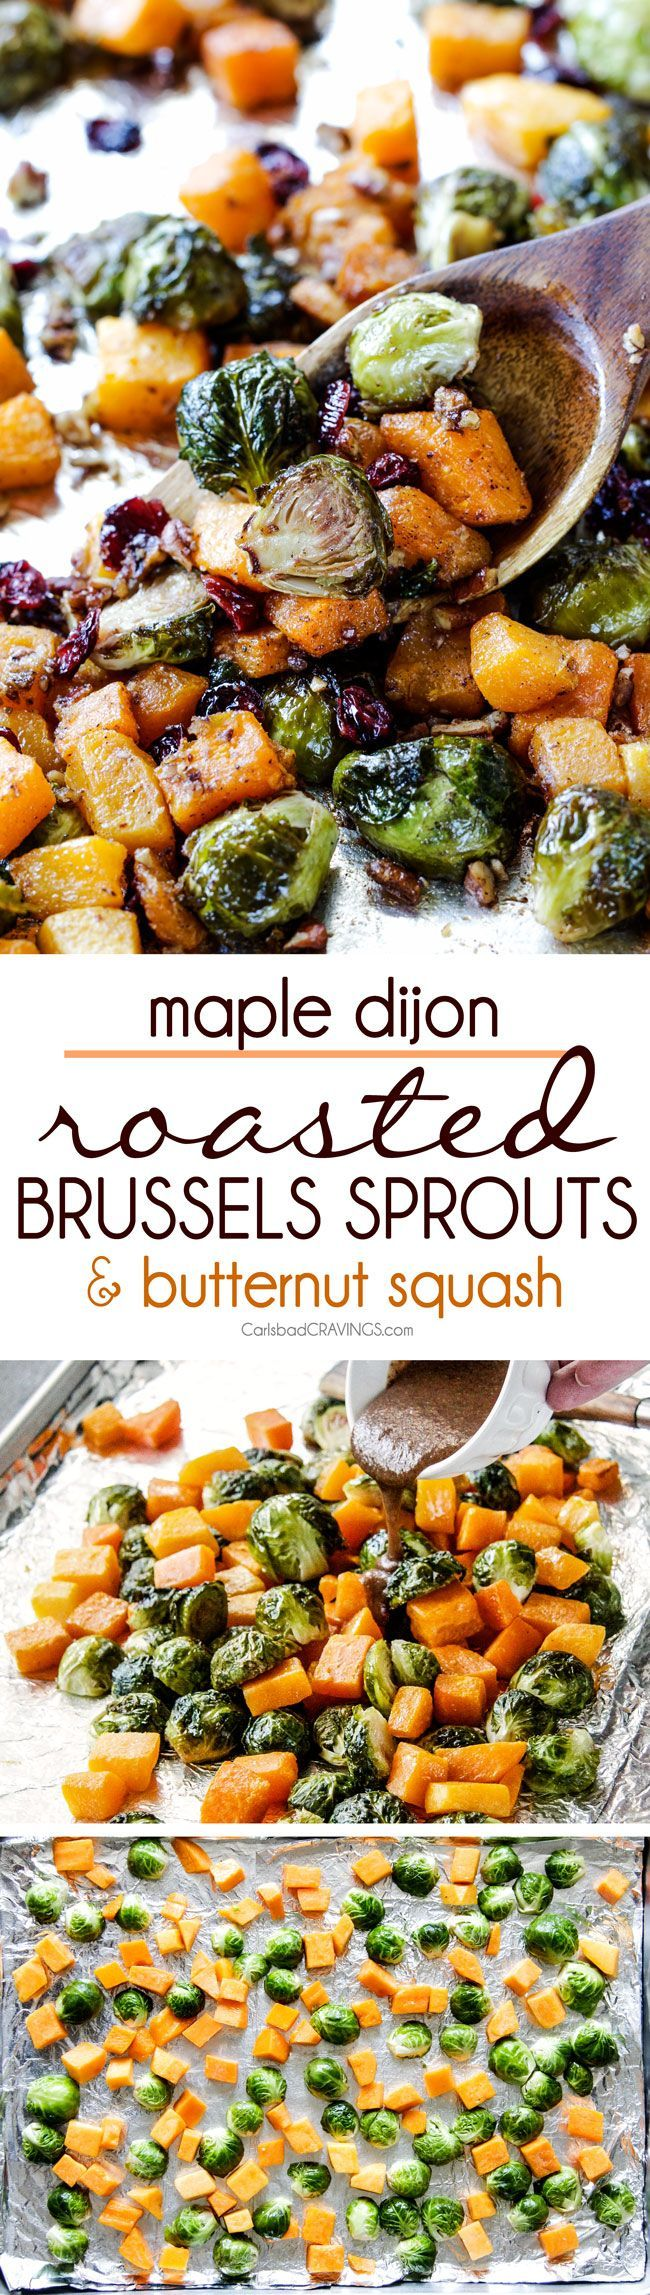 Easy Maple Dijon Roasted Brussels Sprouts and Butternut Squash tossed with cranberries and bacon for the BEST combo ever! tangy, salty, sweet, crunchy, crispy! perfect for Thanksgiving and Christmas, (Butter Ut Squash Recipes)